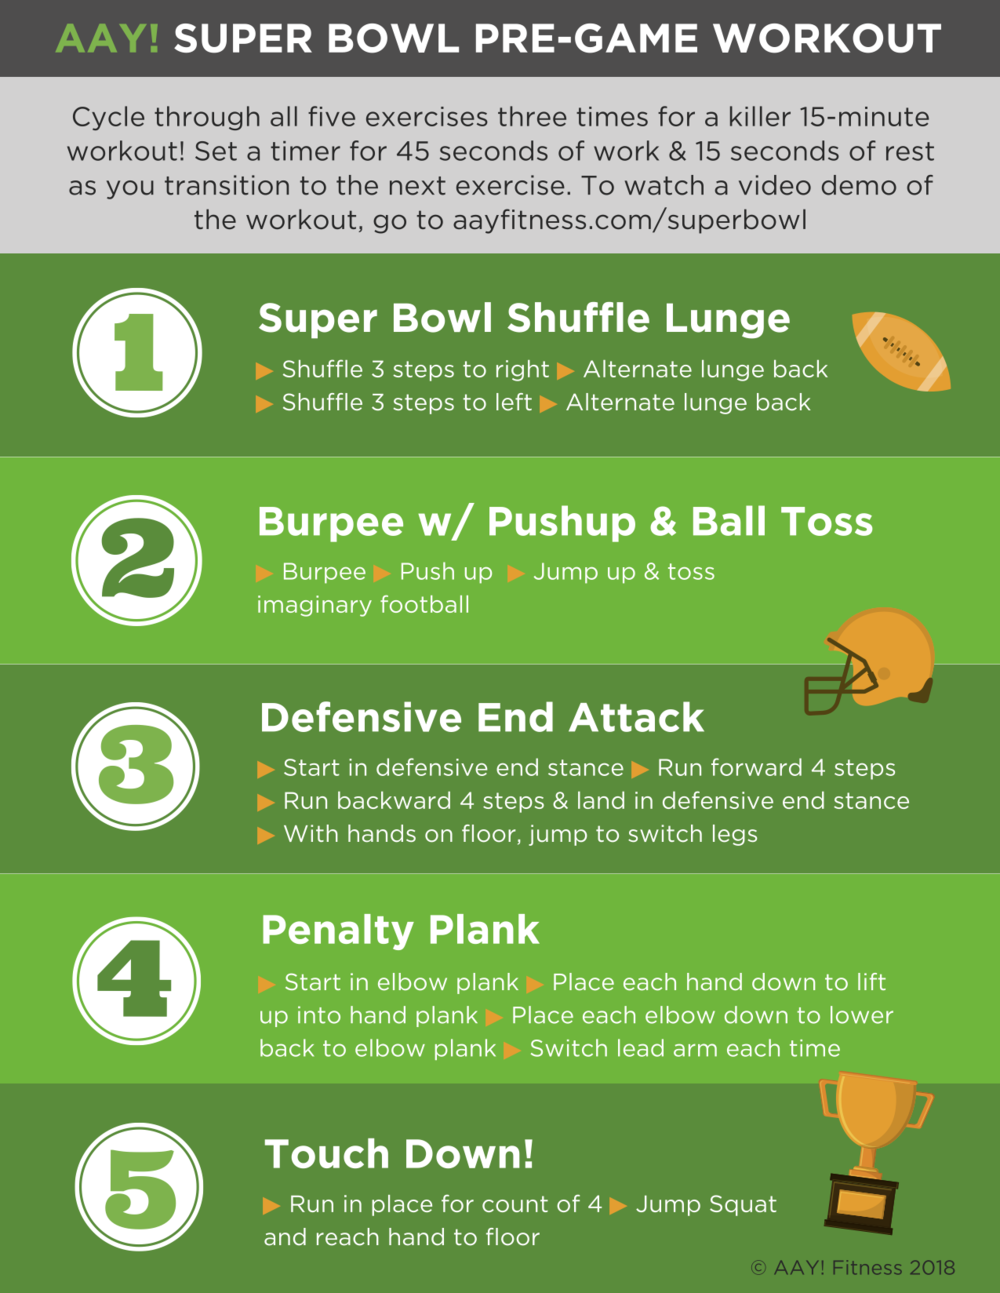 AAY Fitness Super Bowl Workout